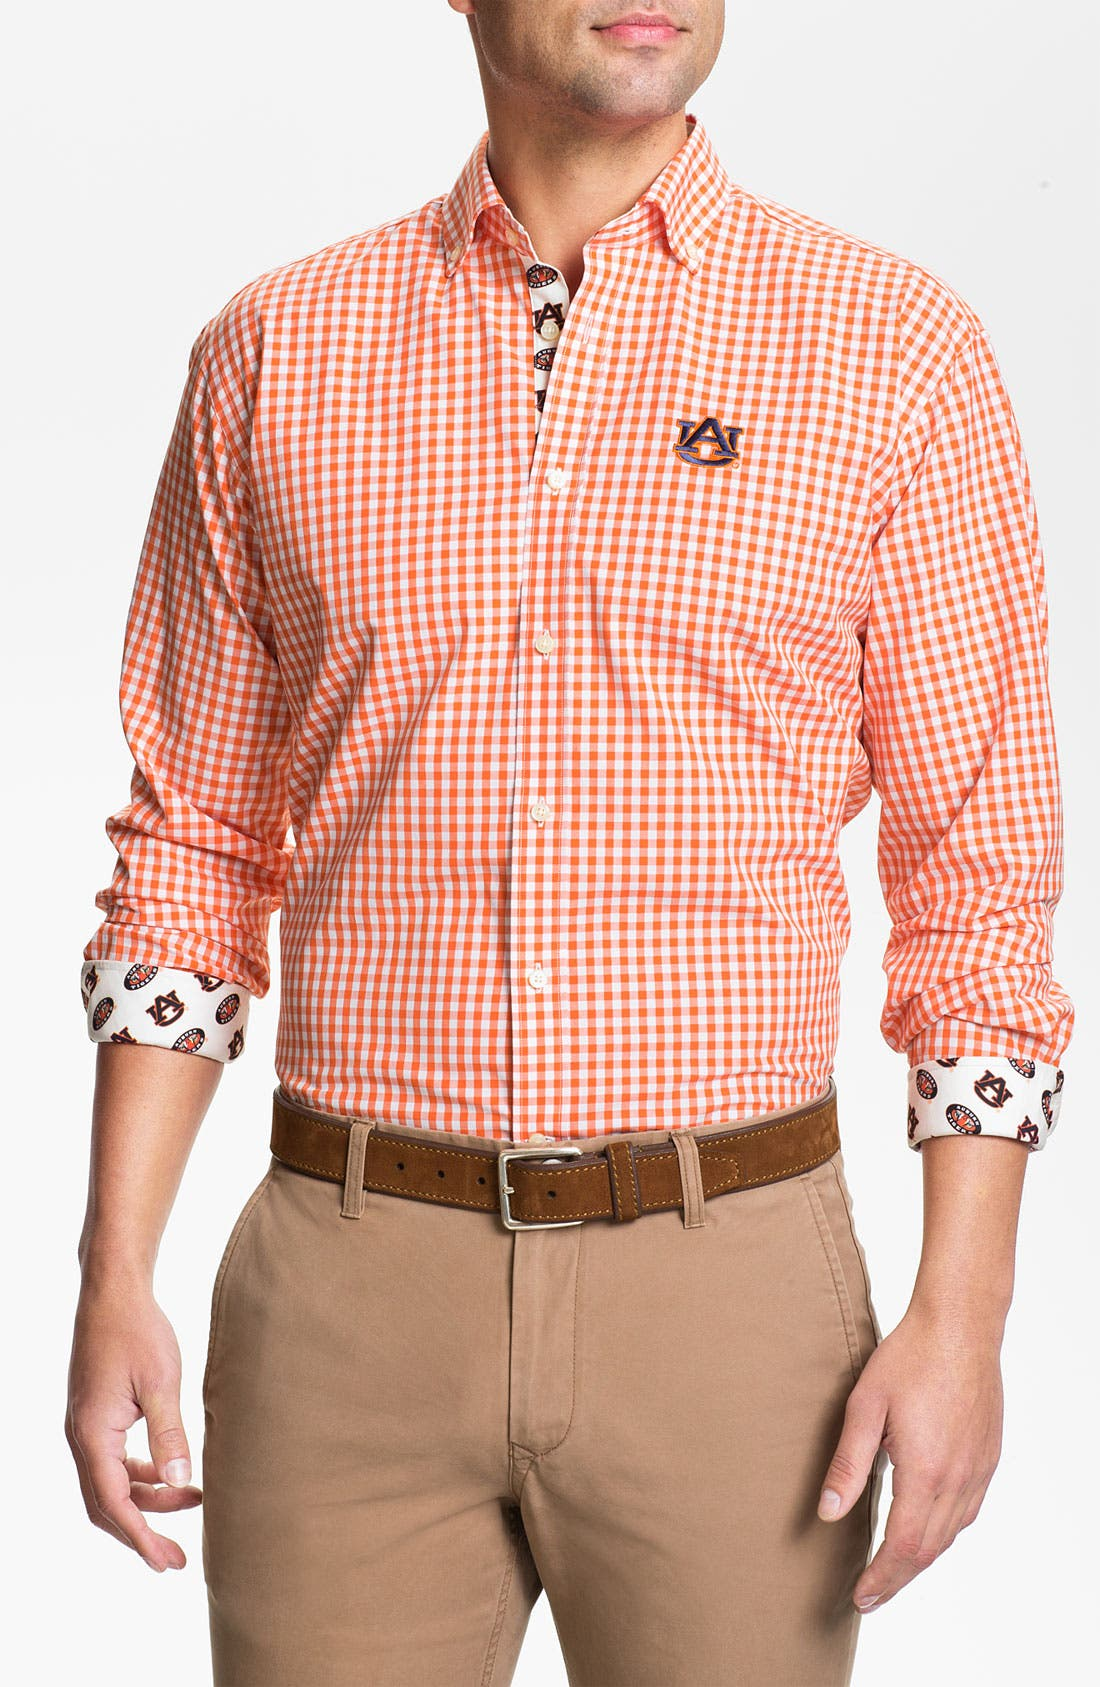 Alternate Image 1 Selected - Thomas Dean 'Auburn University' Regular Fit Sport Shirt (Online Only)